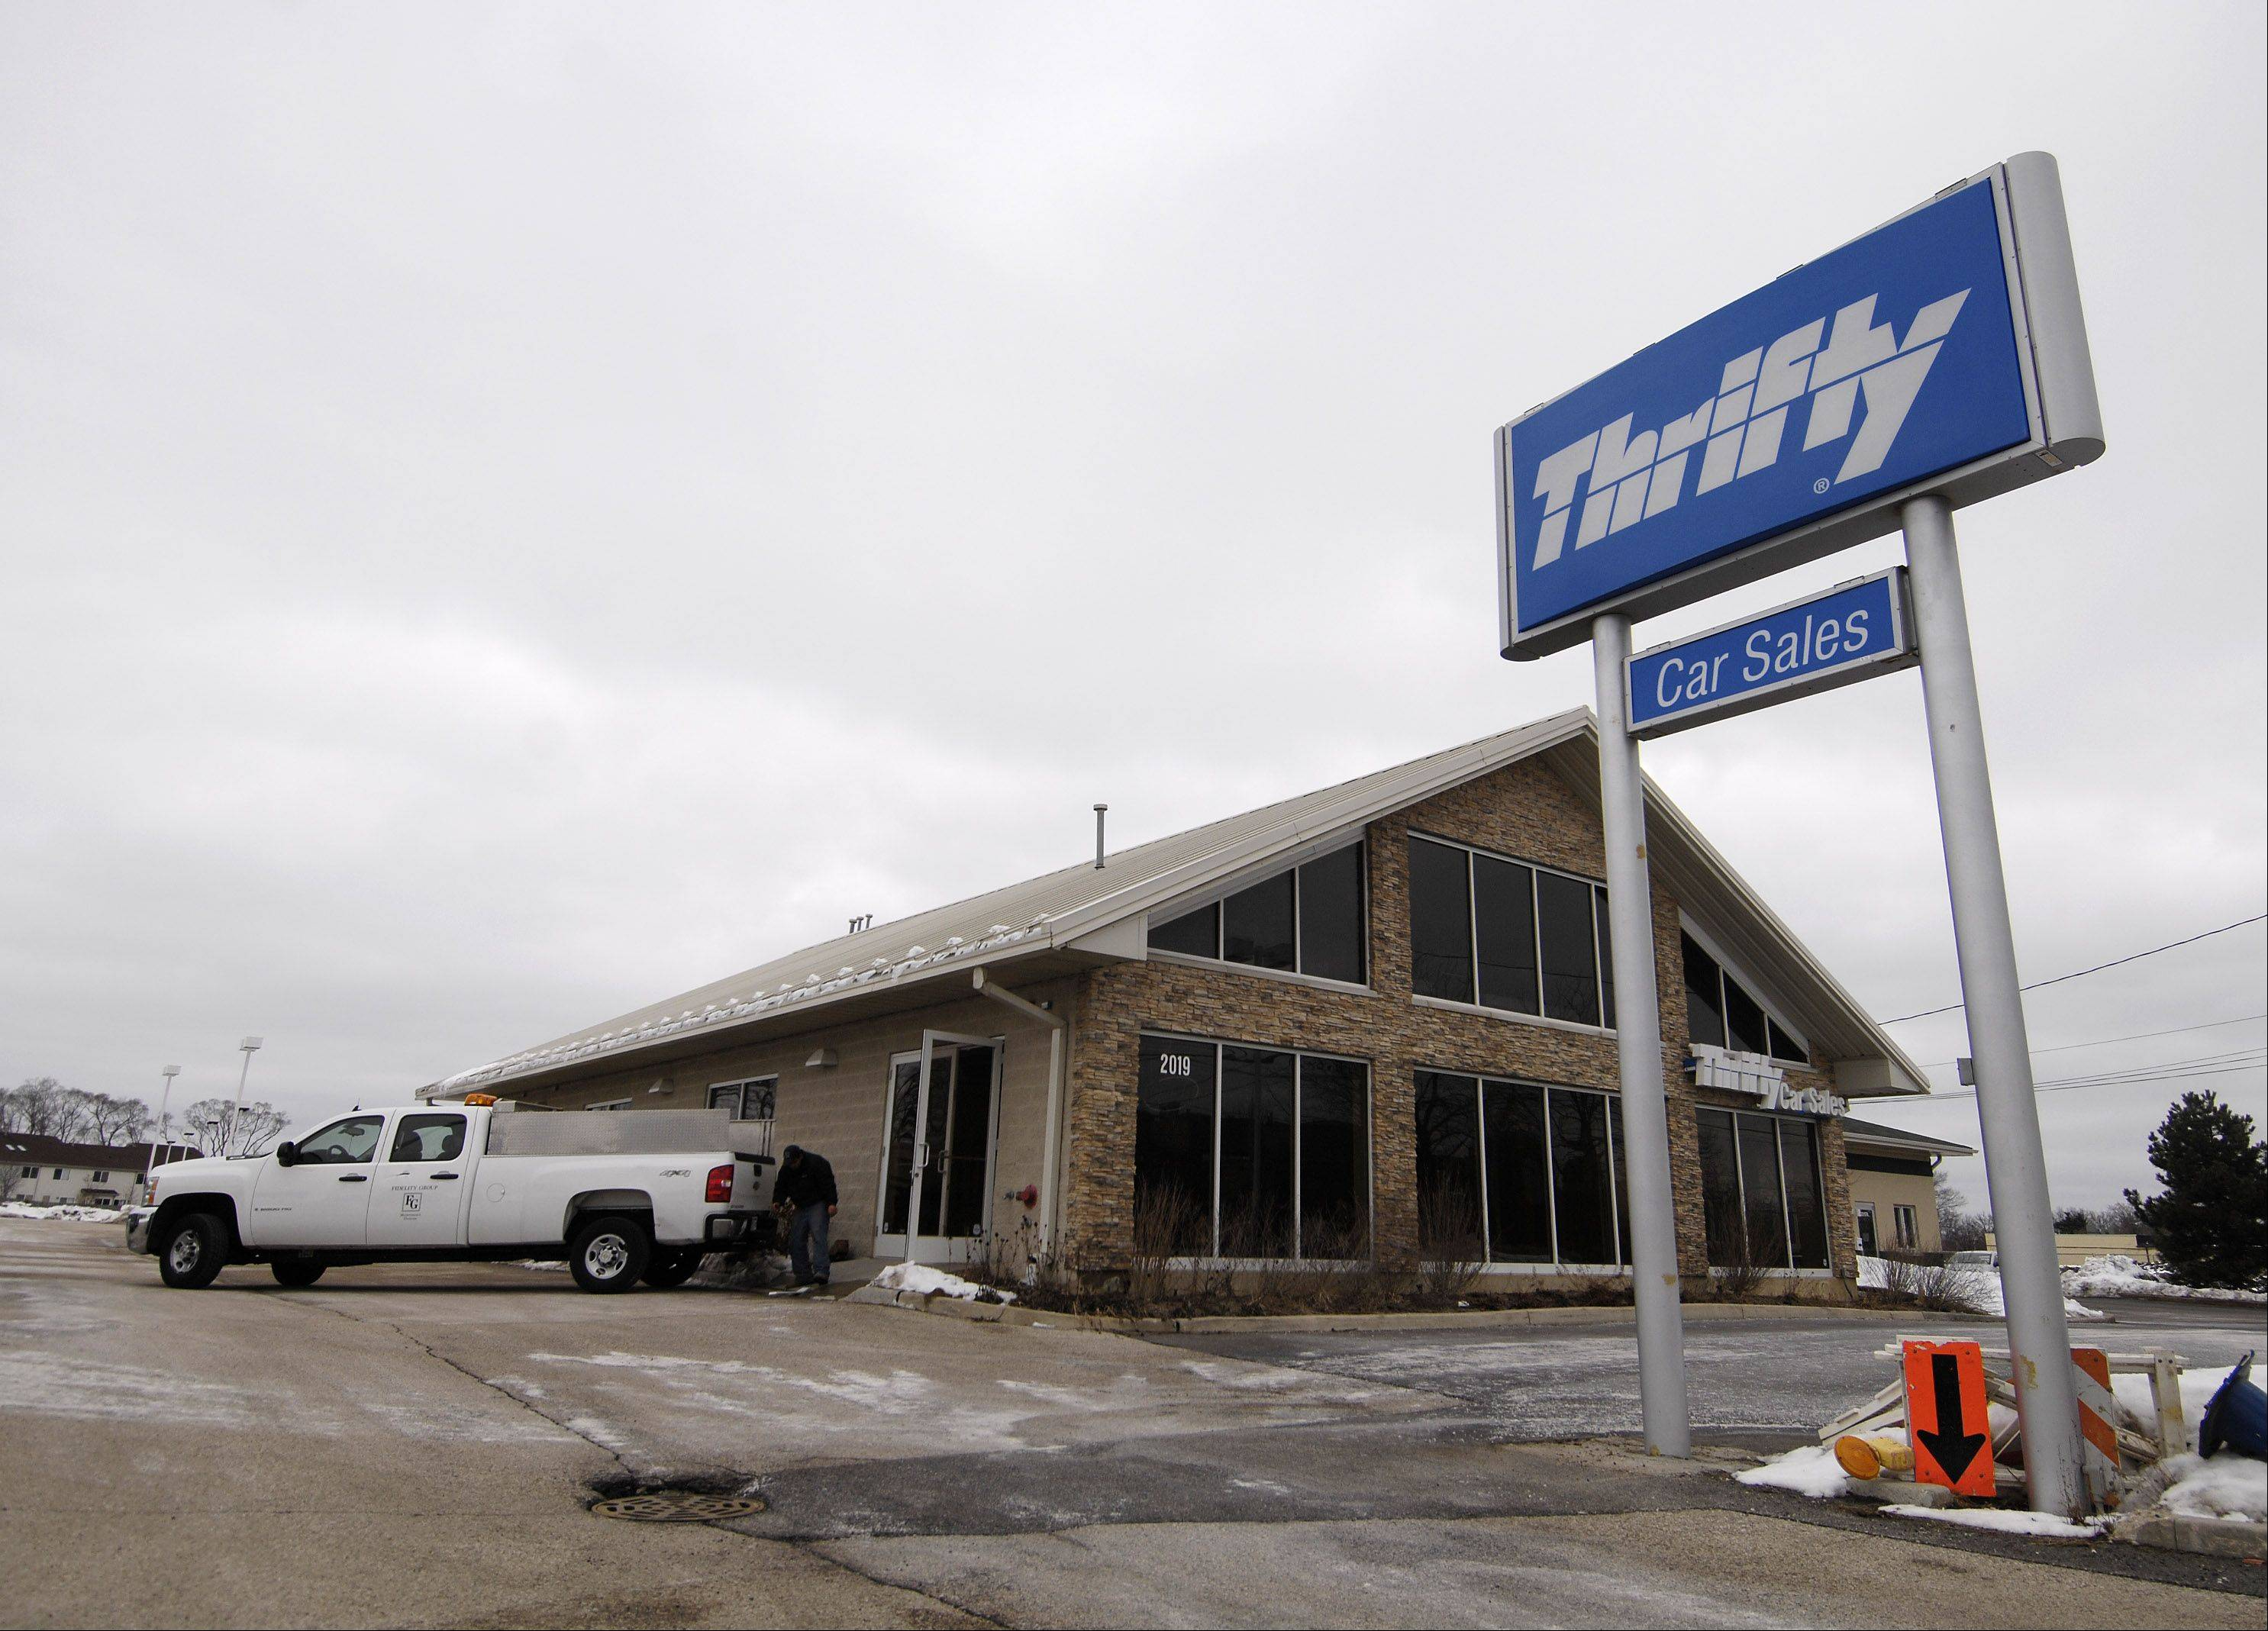 Dollar Thrifty car rental may be purchased by Hertz.